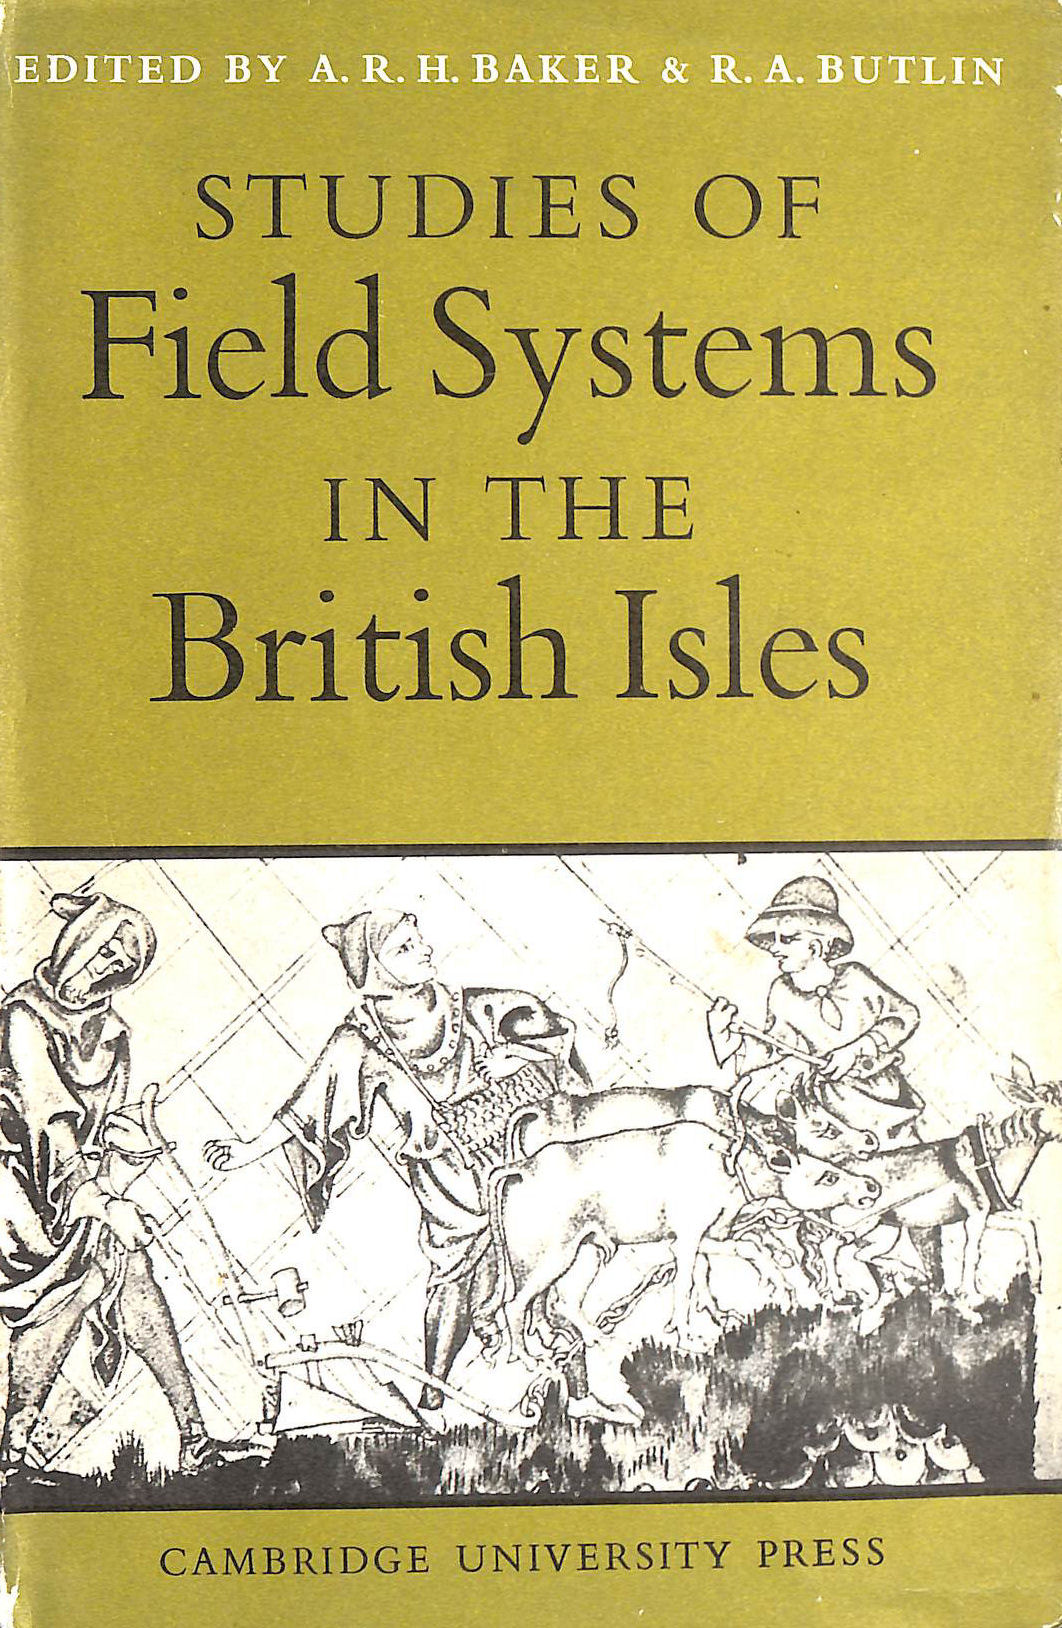 Studies of Field Systems in the British Isles, Baker, Alan R. H. [Editor]; Butlin, Robin A. [Editor];